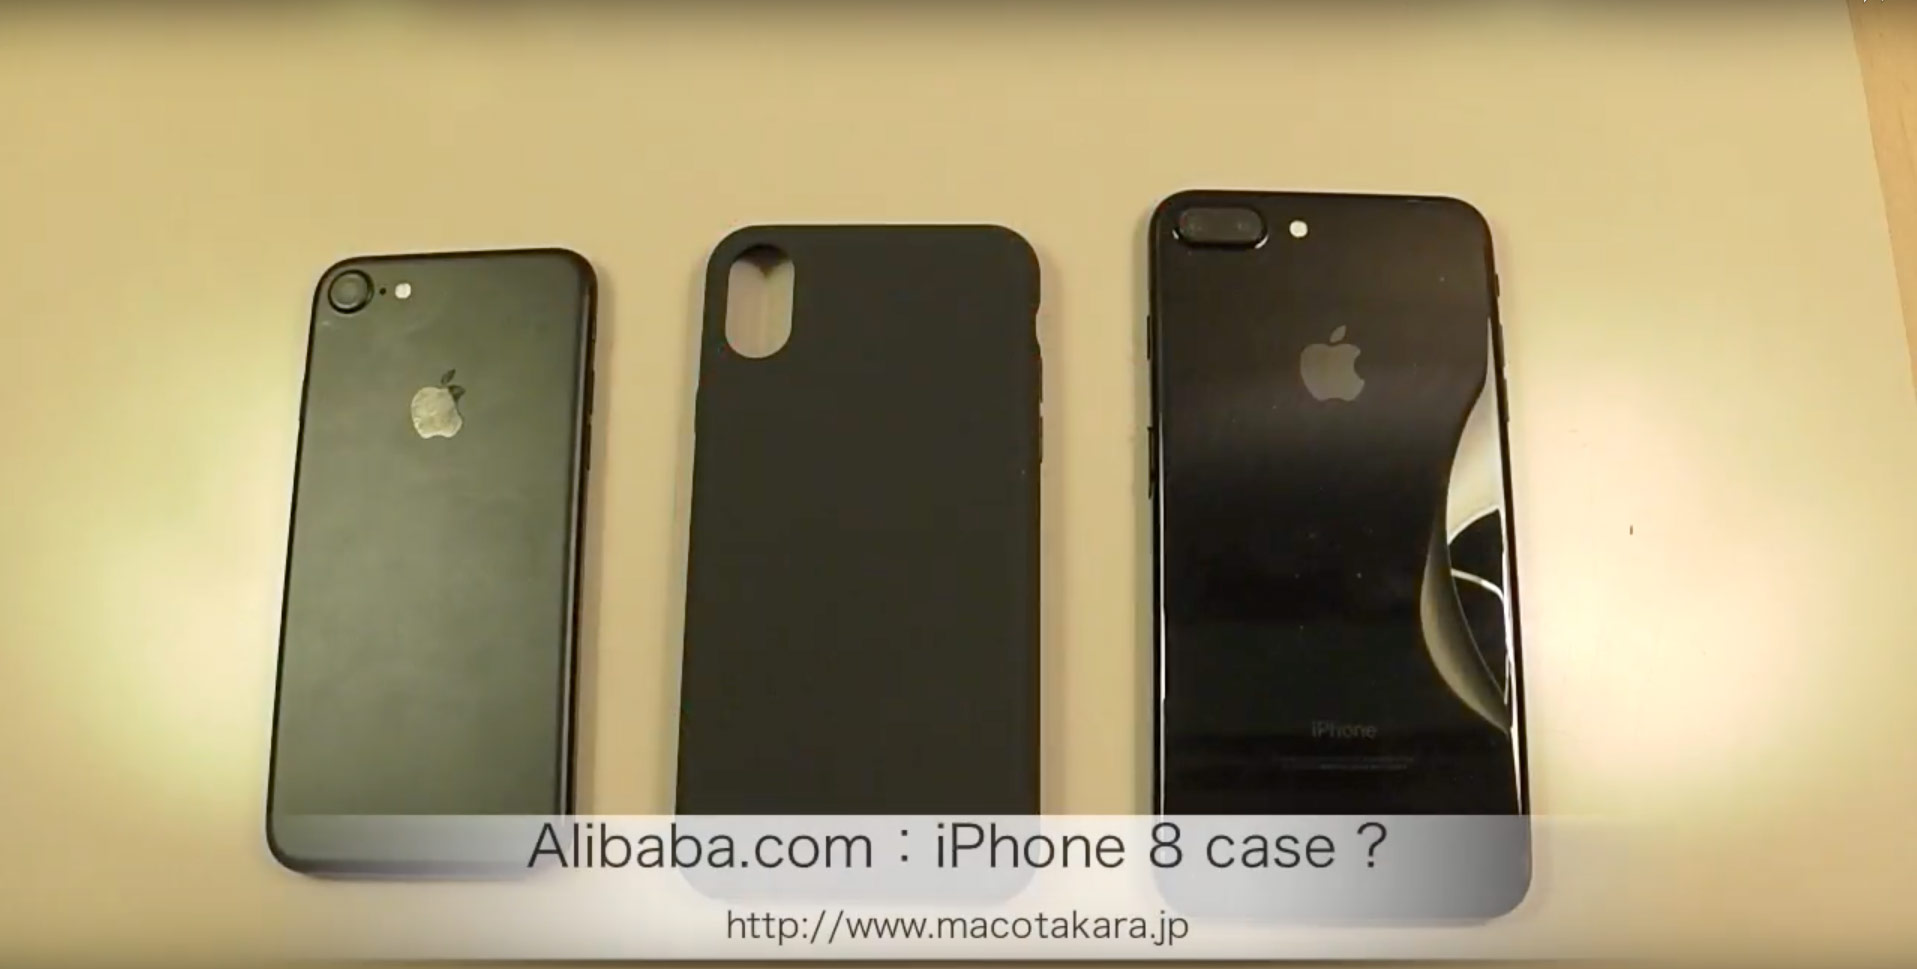 An Apparent 'iPhone 8' Case is Compared to the iPhone 7, iPhone 7 Plus